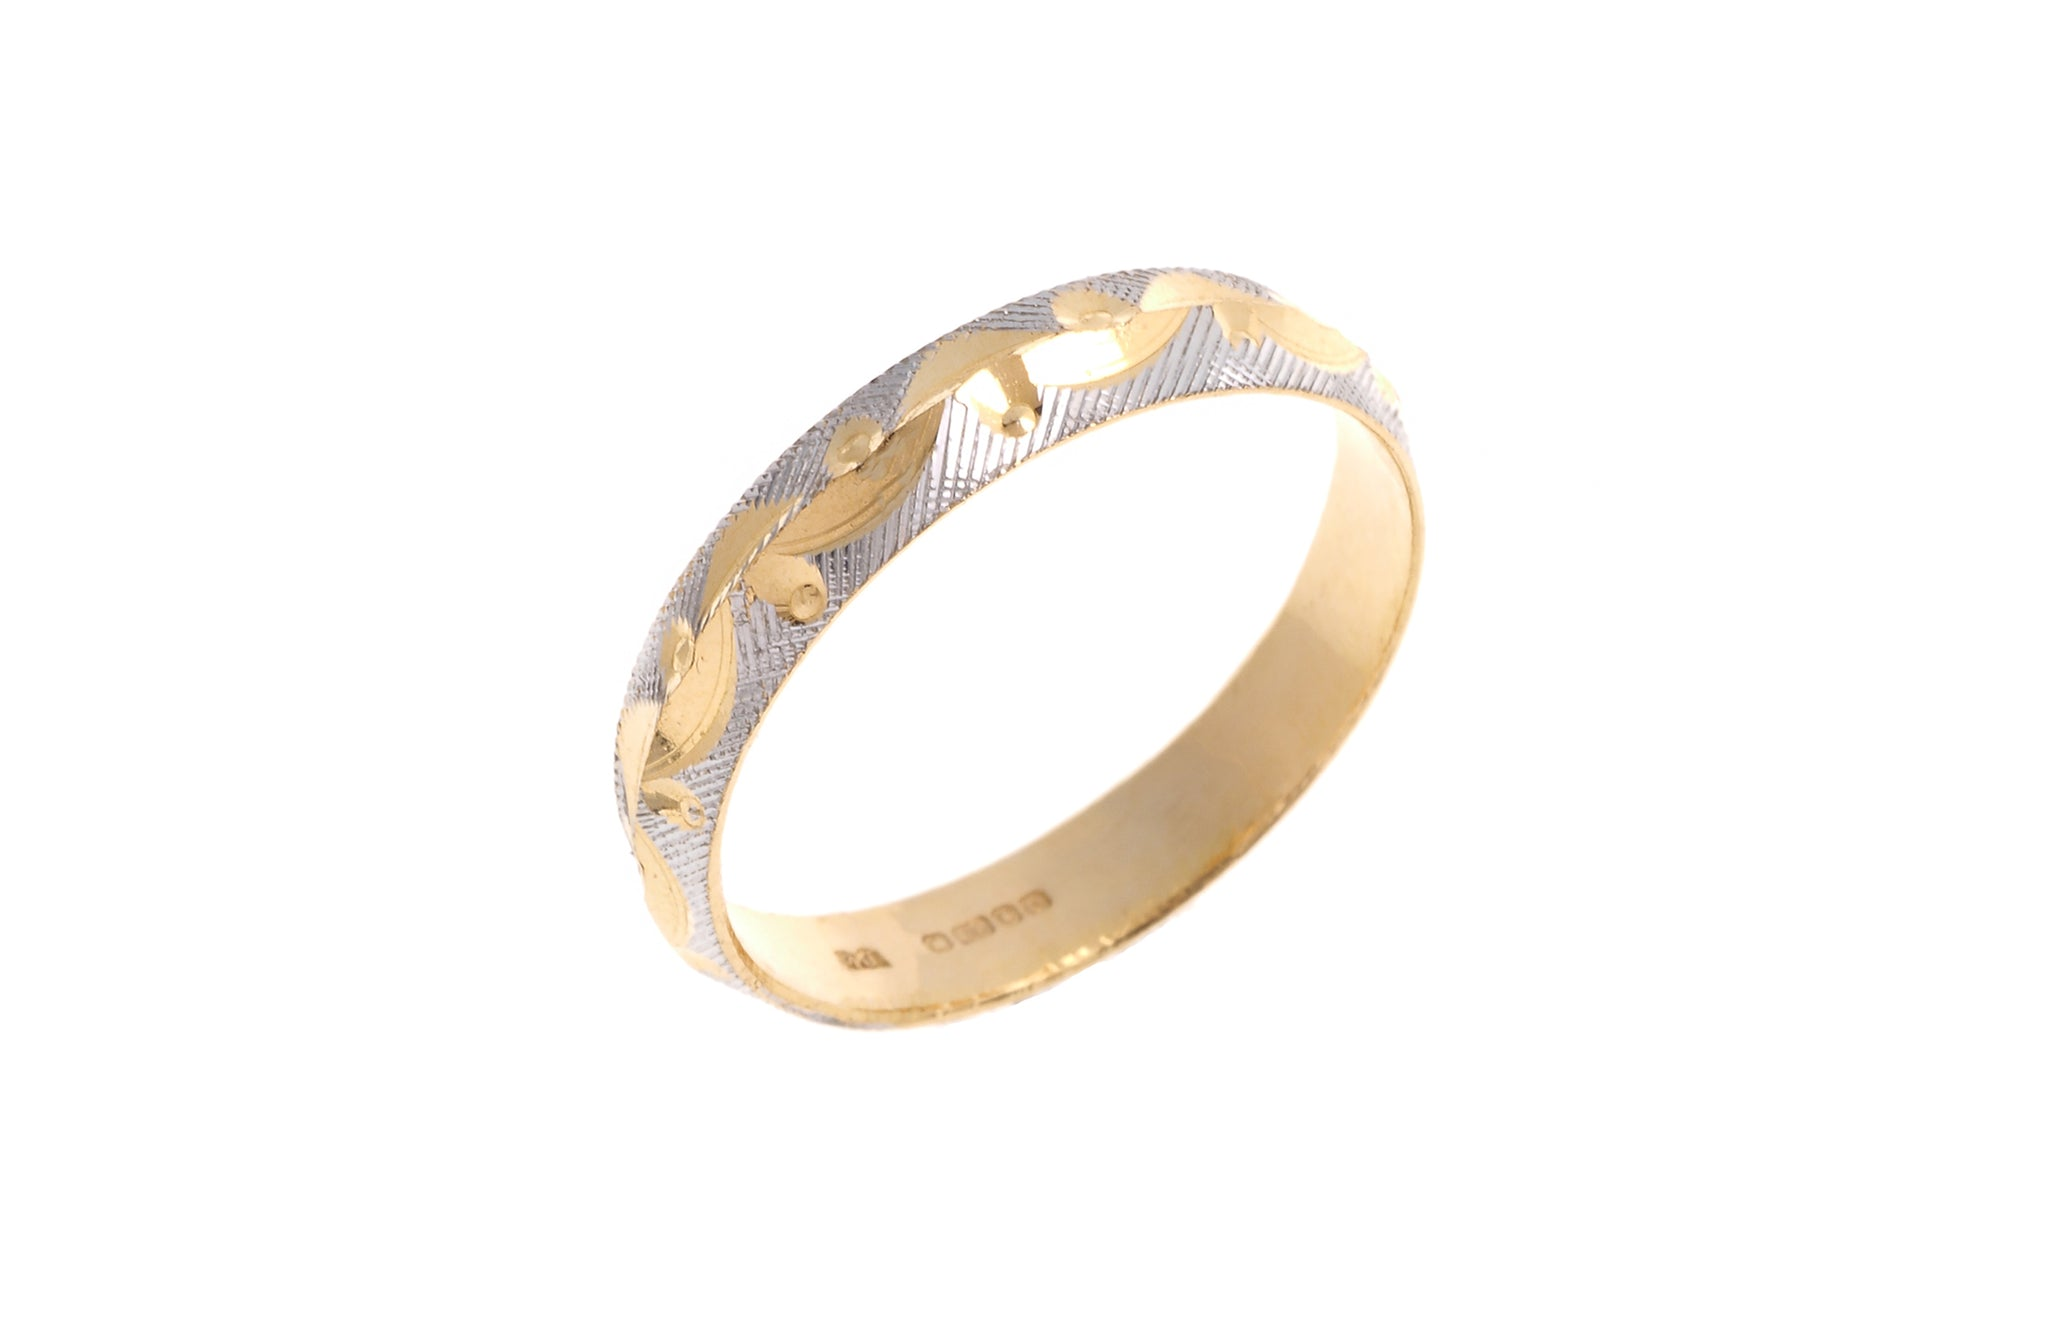 22ct Gold Wedding Band with Rhodium Design (2.6g) LR-3560